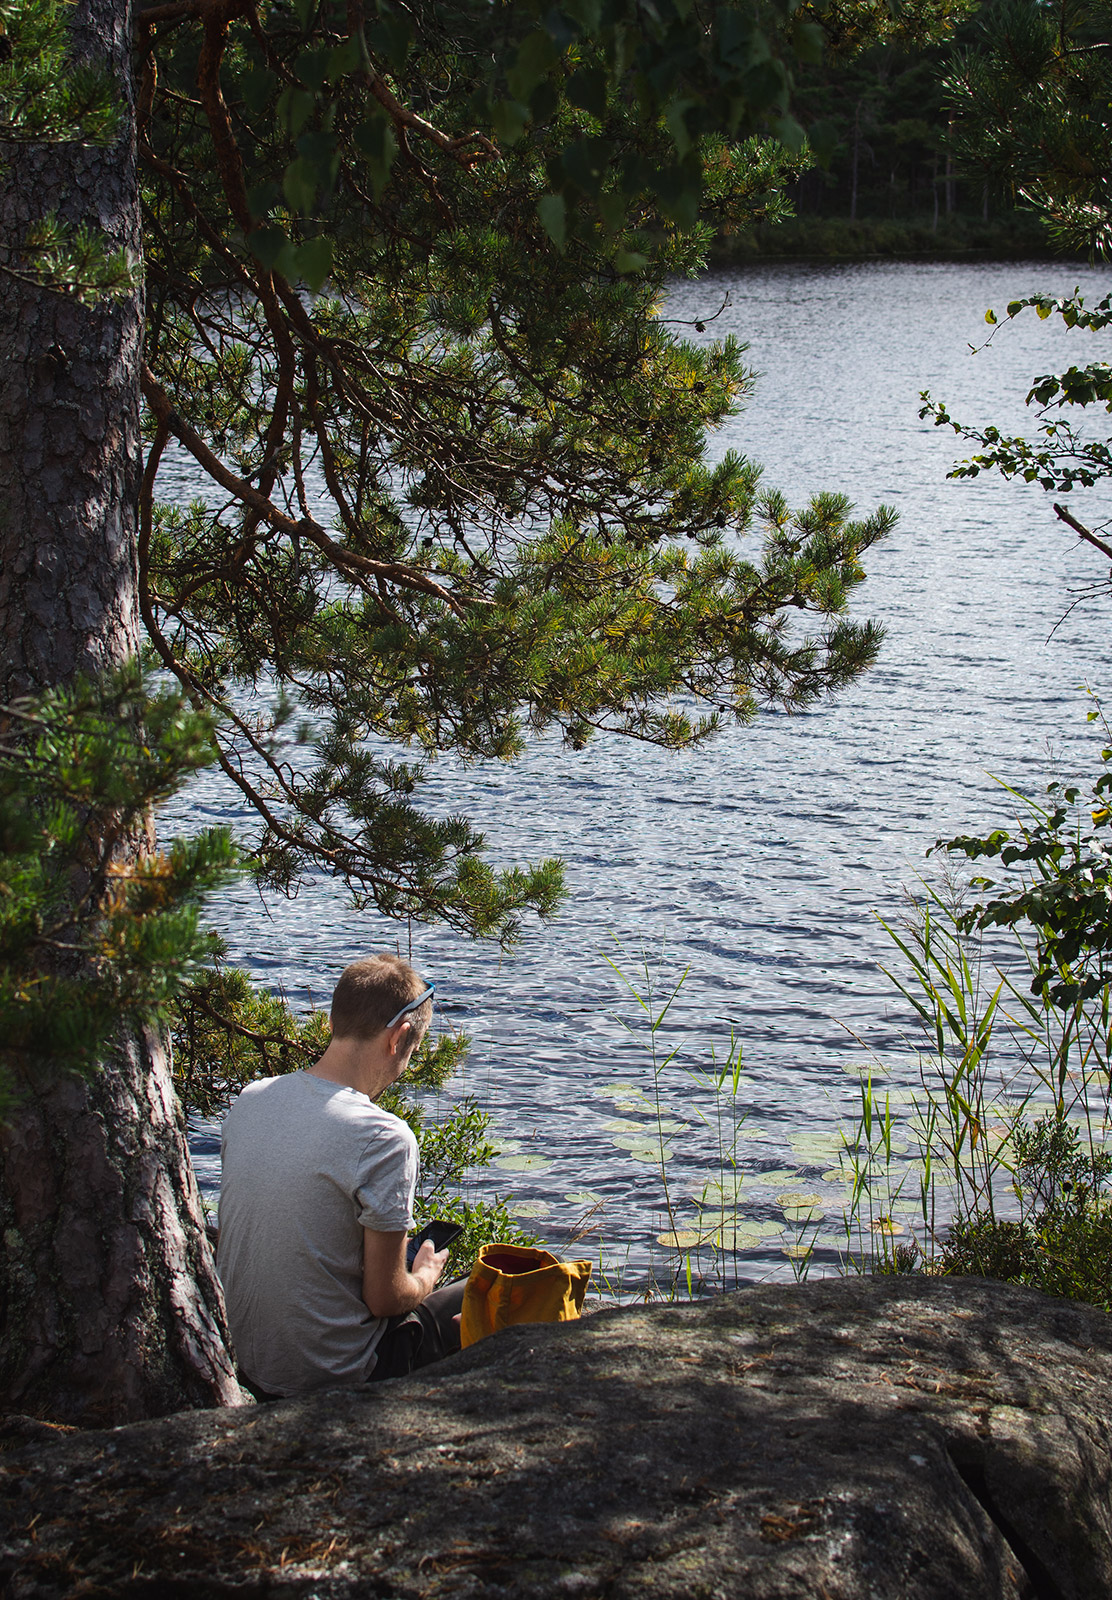 Man sat next to lake